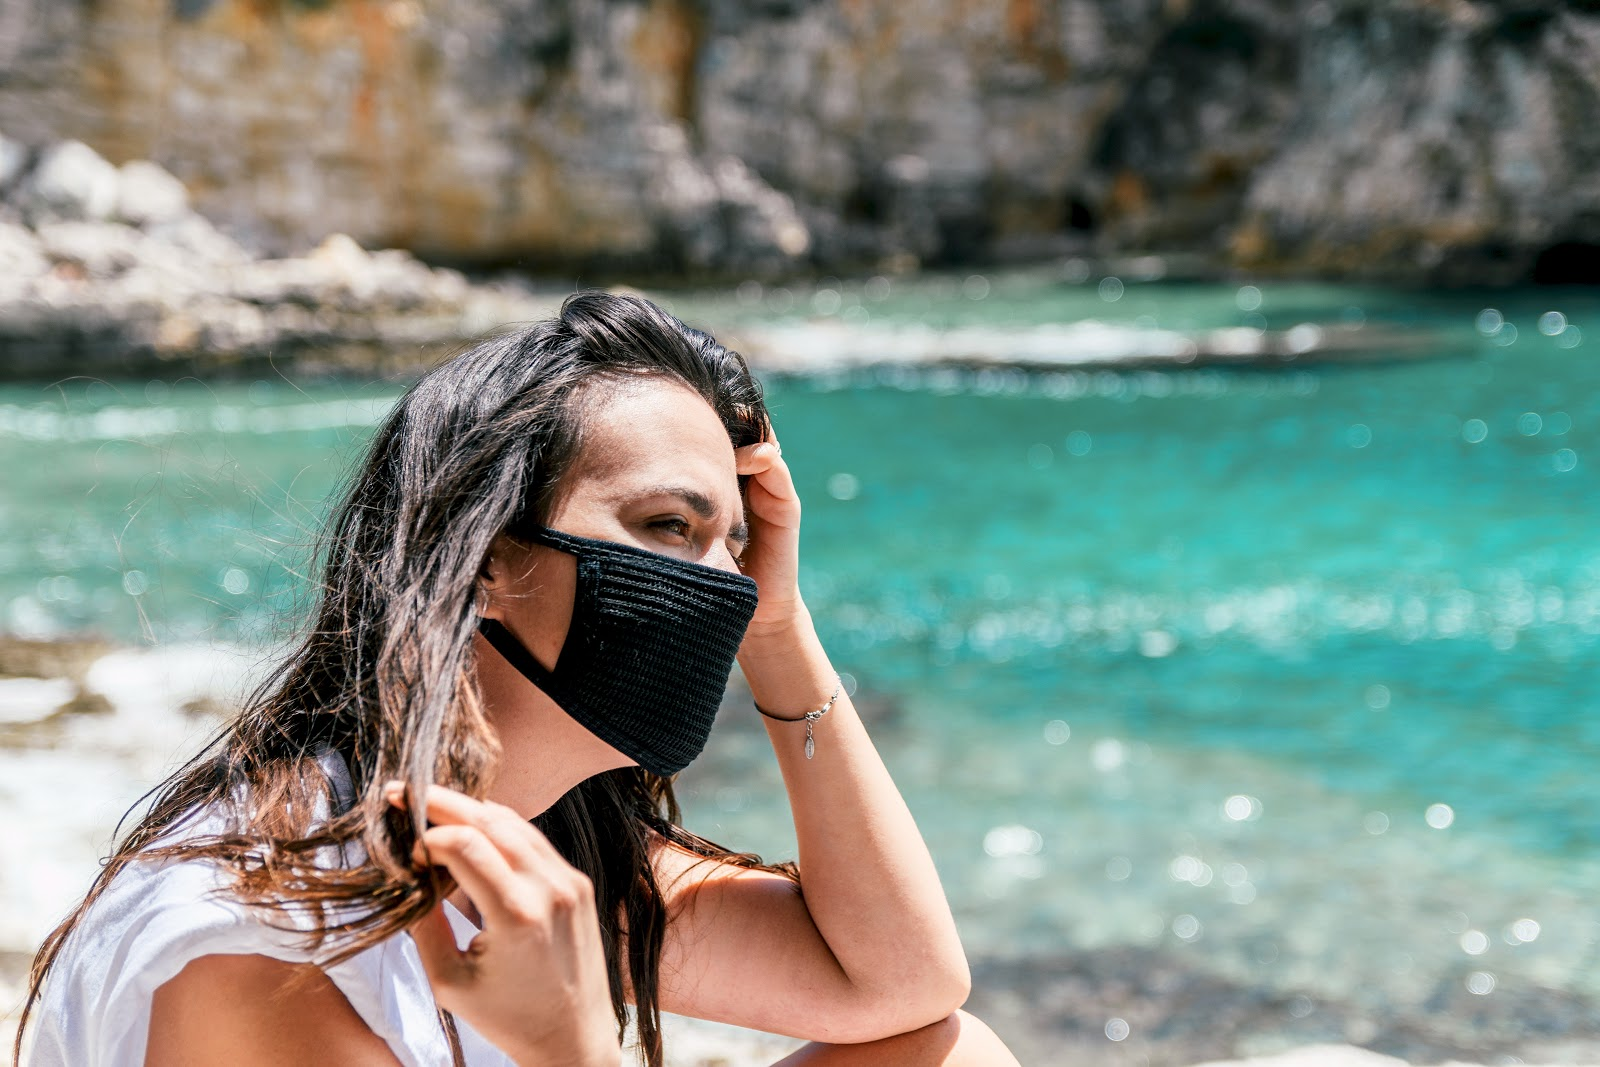 Fashionable Masks Make the Pandemic Safe and Chic | MakersValley Blog